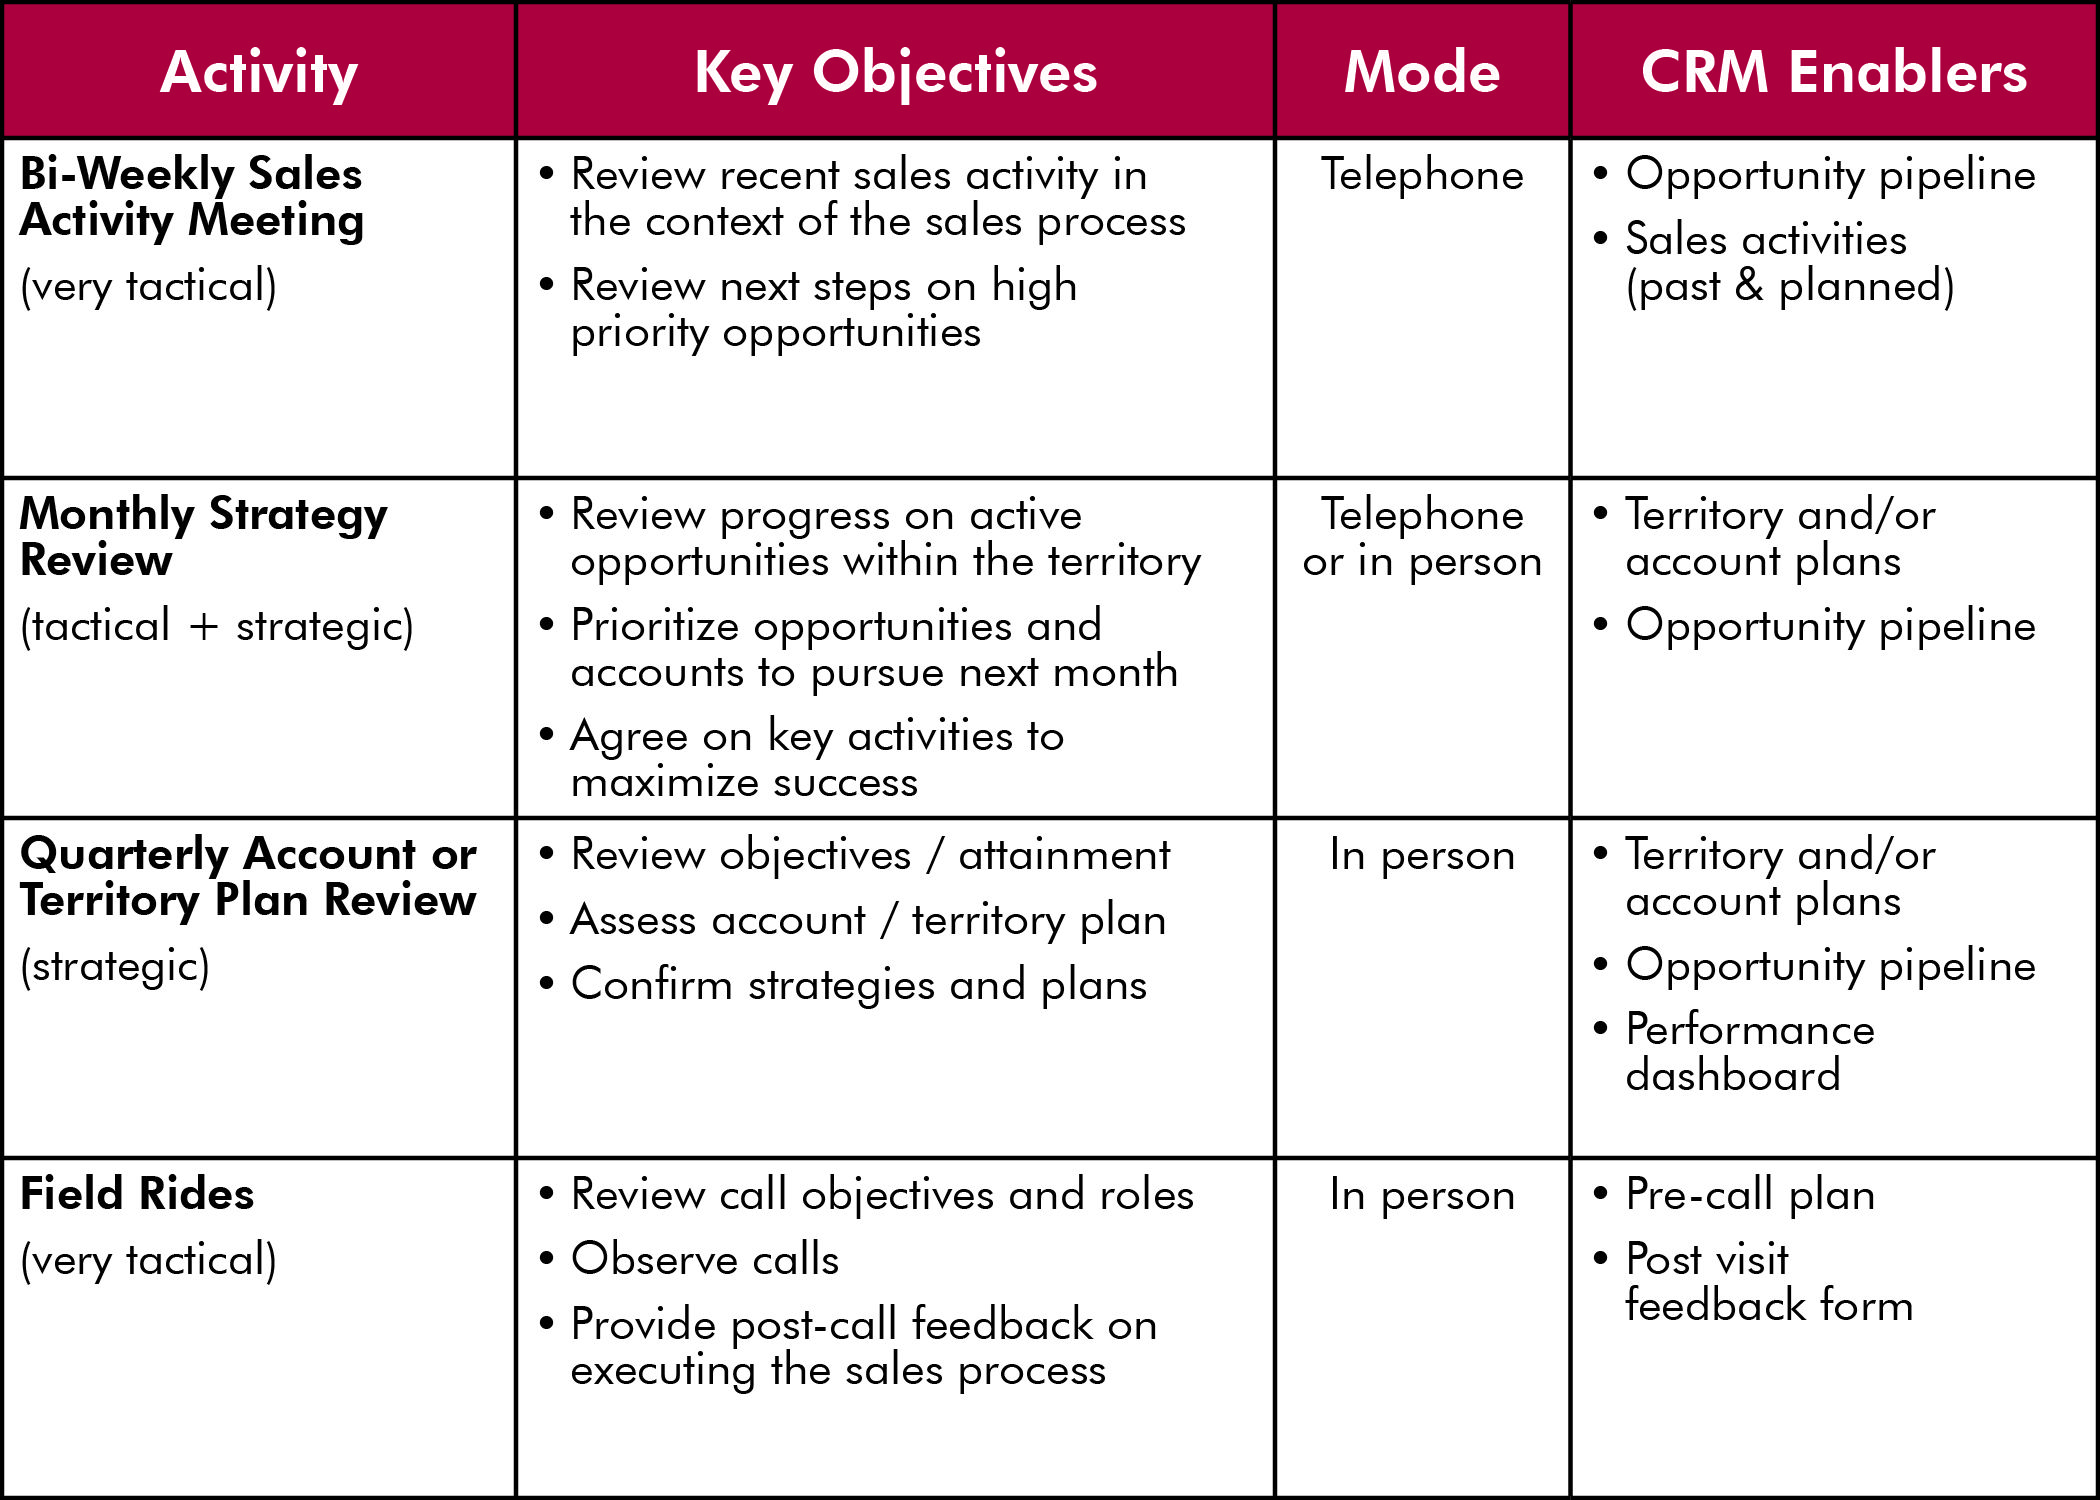 Crm Activities And Enablers Relationship Management Customer